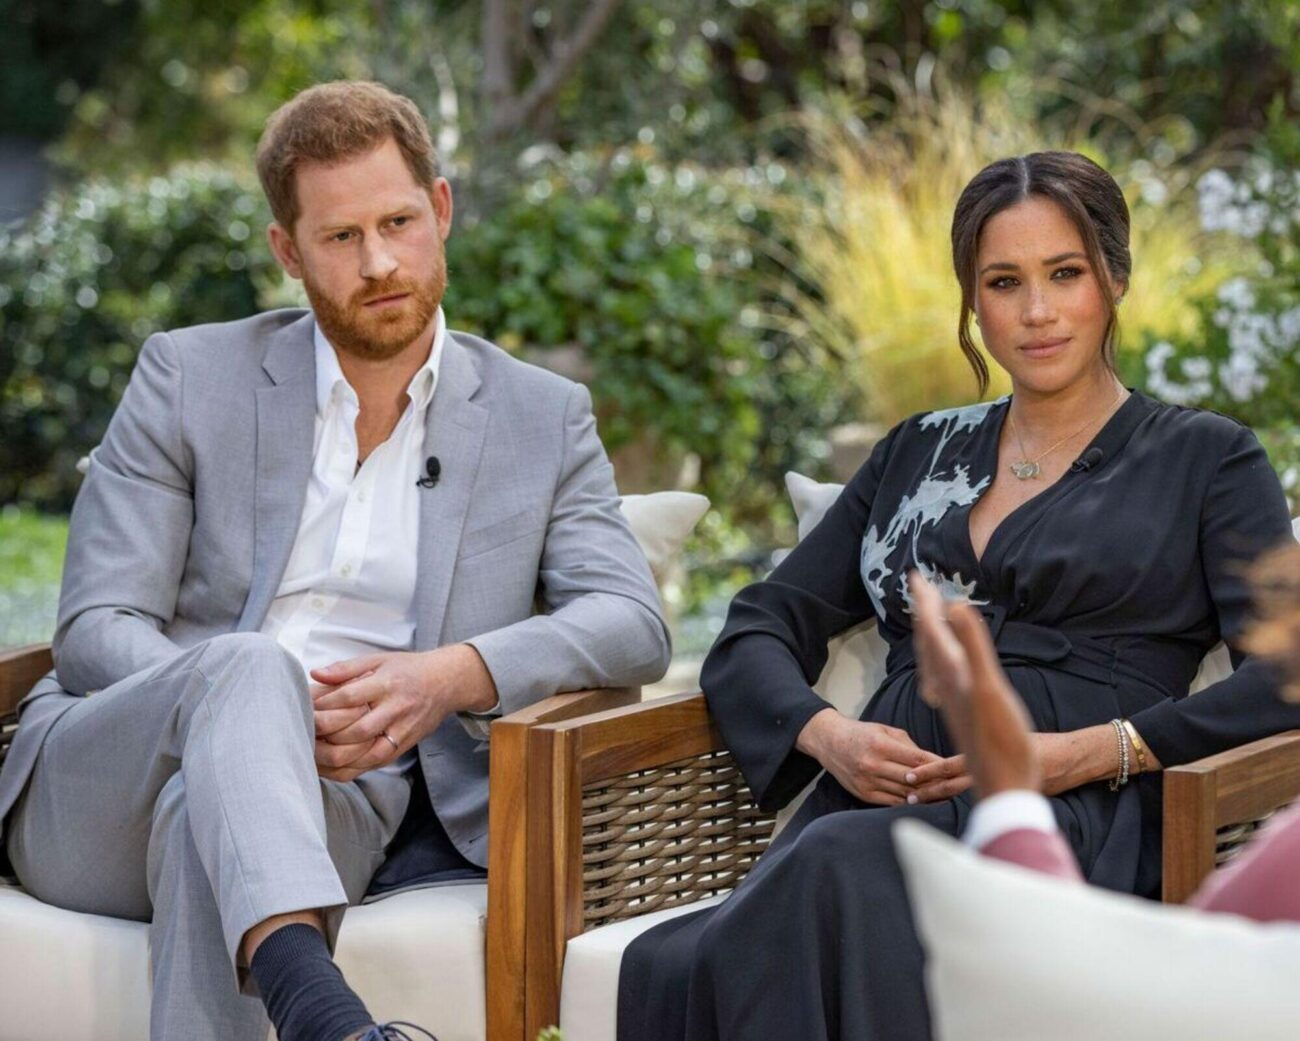 Did you watch Oprah Winfrey interview Prince Harry and Meghan Markle? Looks like they spilt more than just tea. Here's the biggest bombshells.